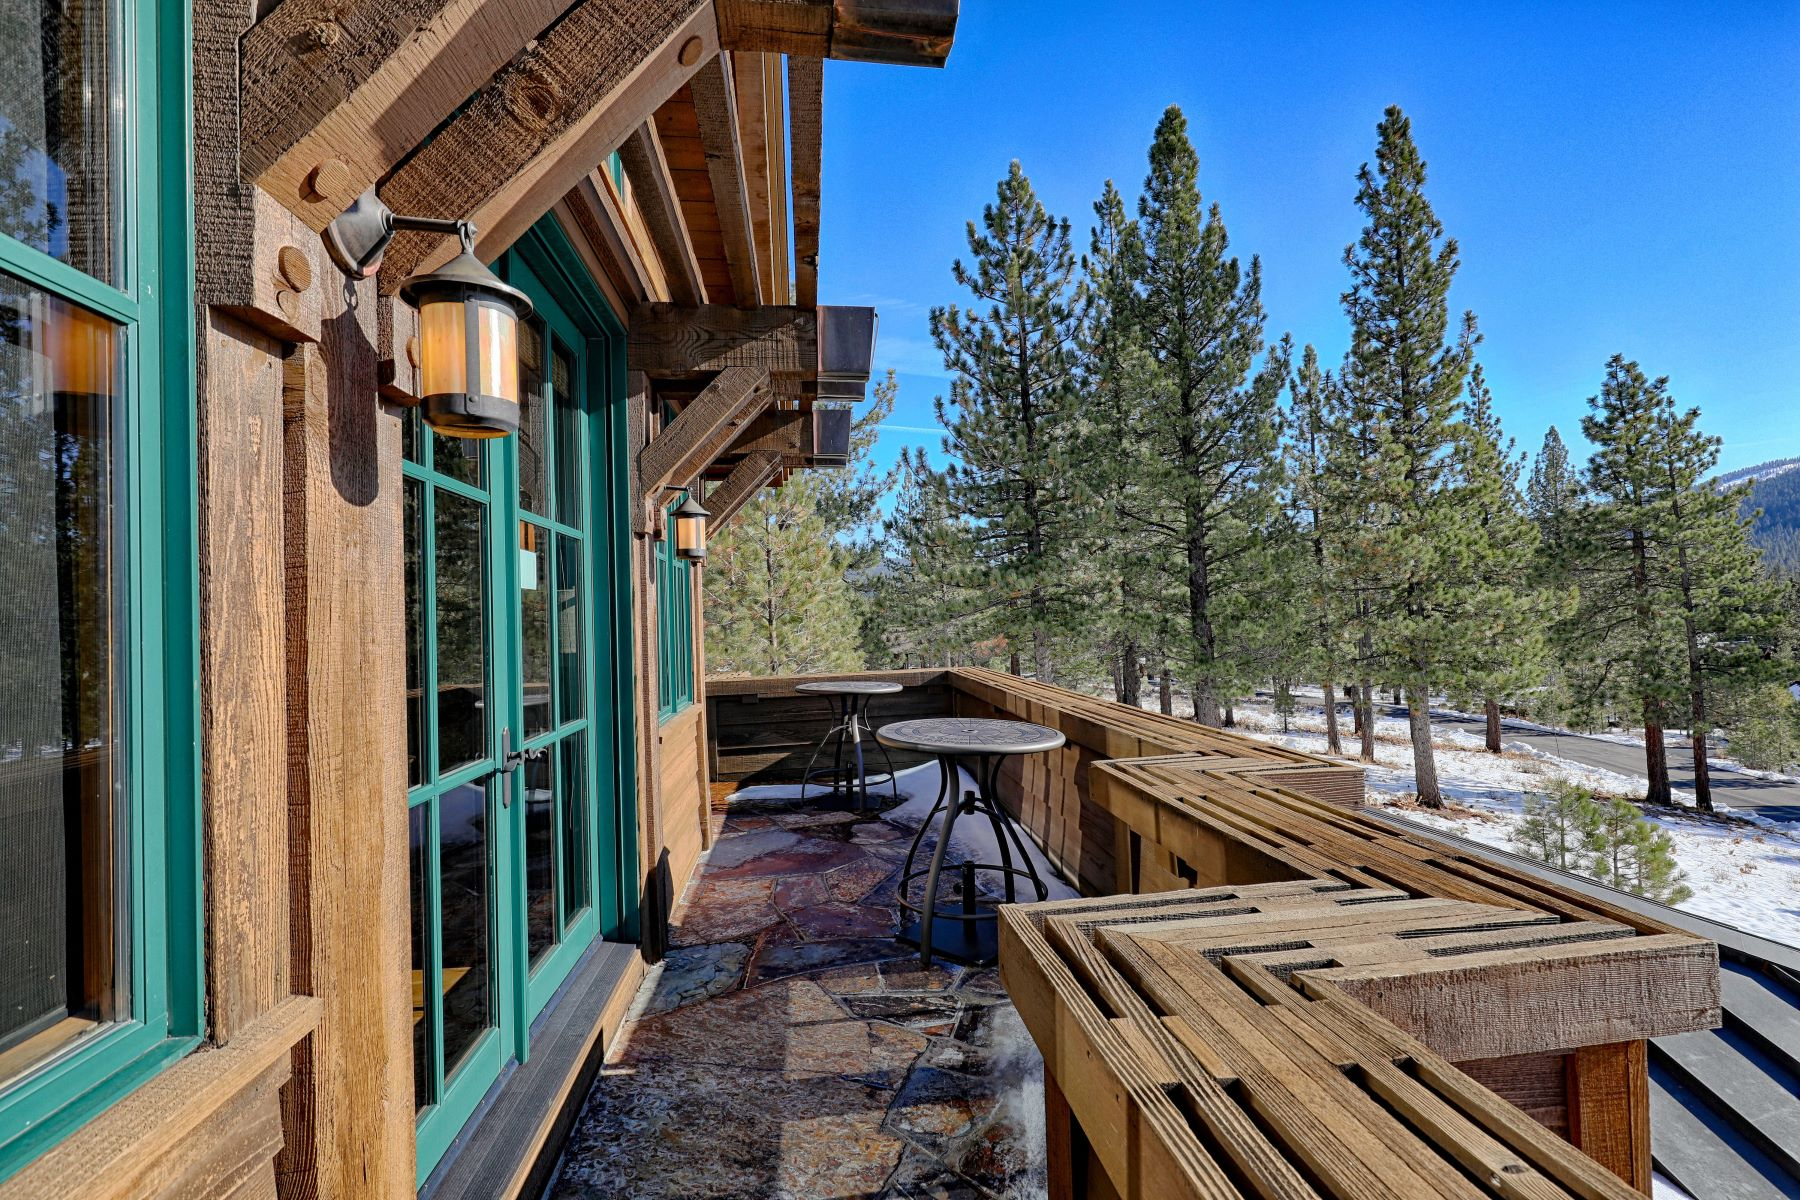 Additional photo for property listing at 340 Elias Baldwin, Truckee, California 96161 340 Elias Baldwin 特拉基, 加利福尼亚州 96161 美国